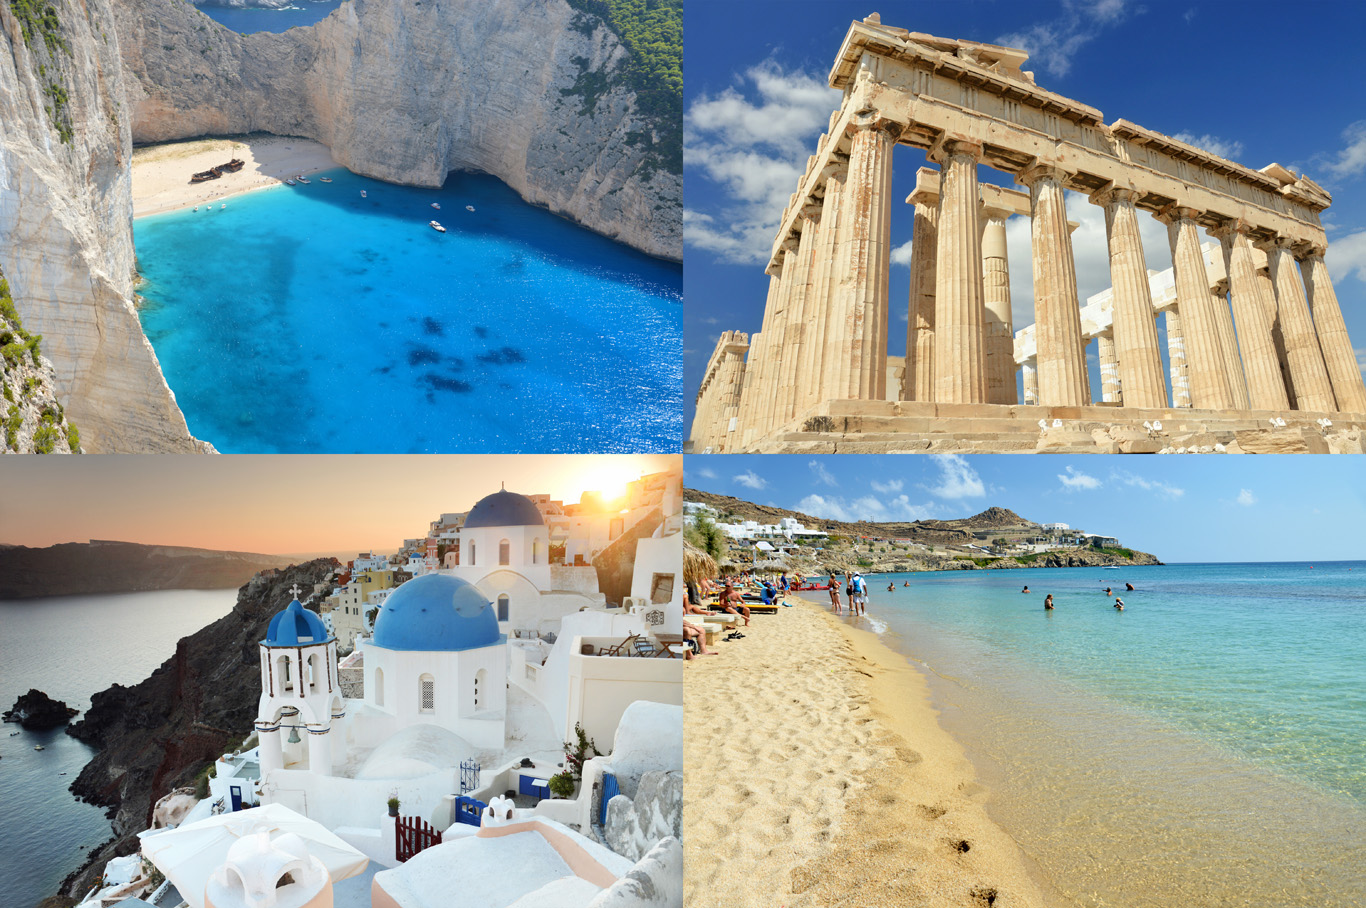 Greece: the Shipwreck beach, the Acropolis, sunset in Santorini and a beach in Mykonos